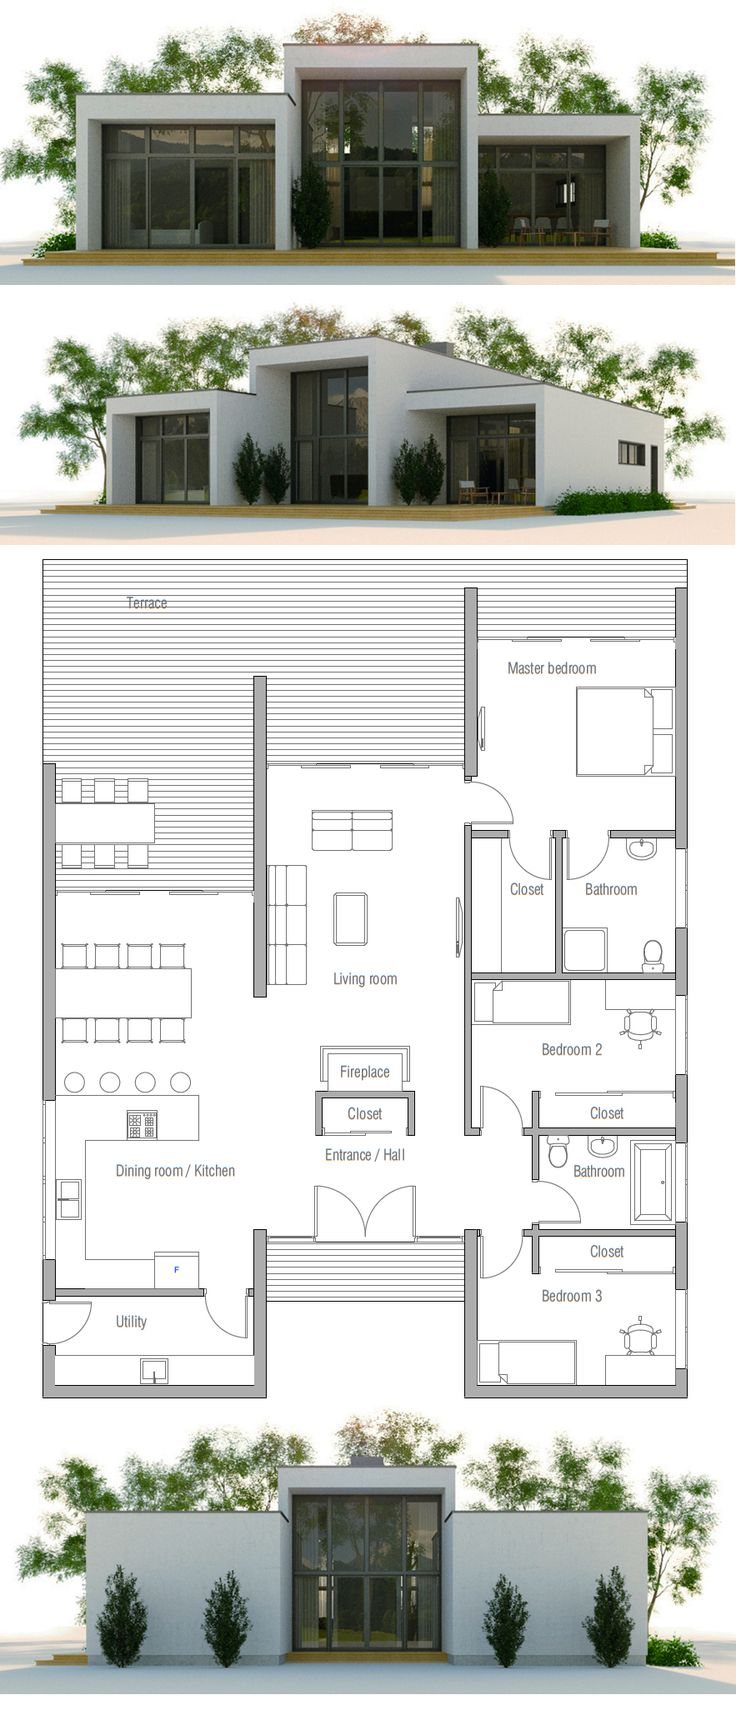 Best 25 minimalist house ideas on pinterest modern for Modern home blueprints